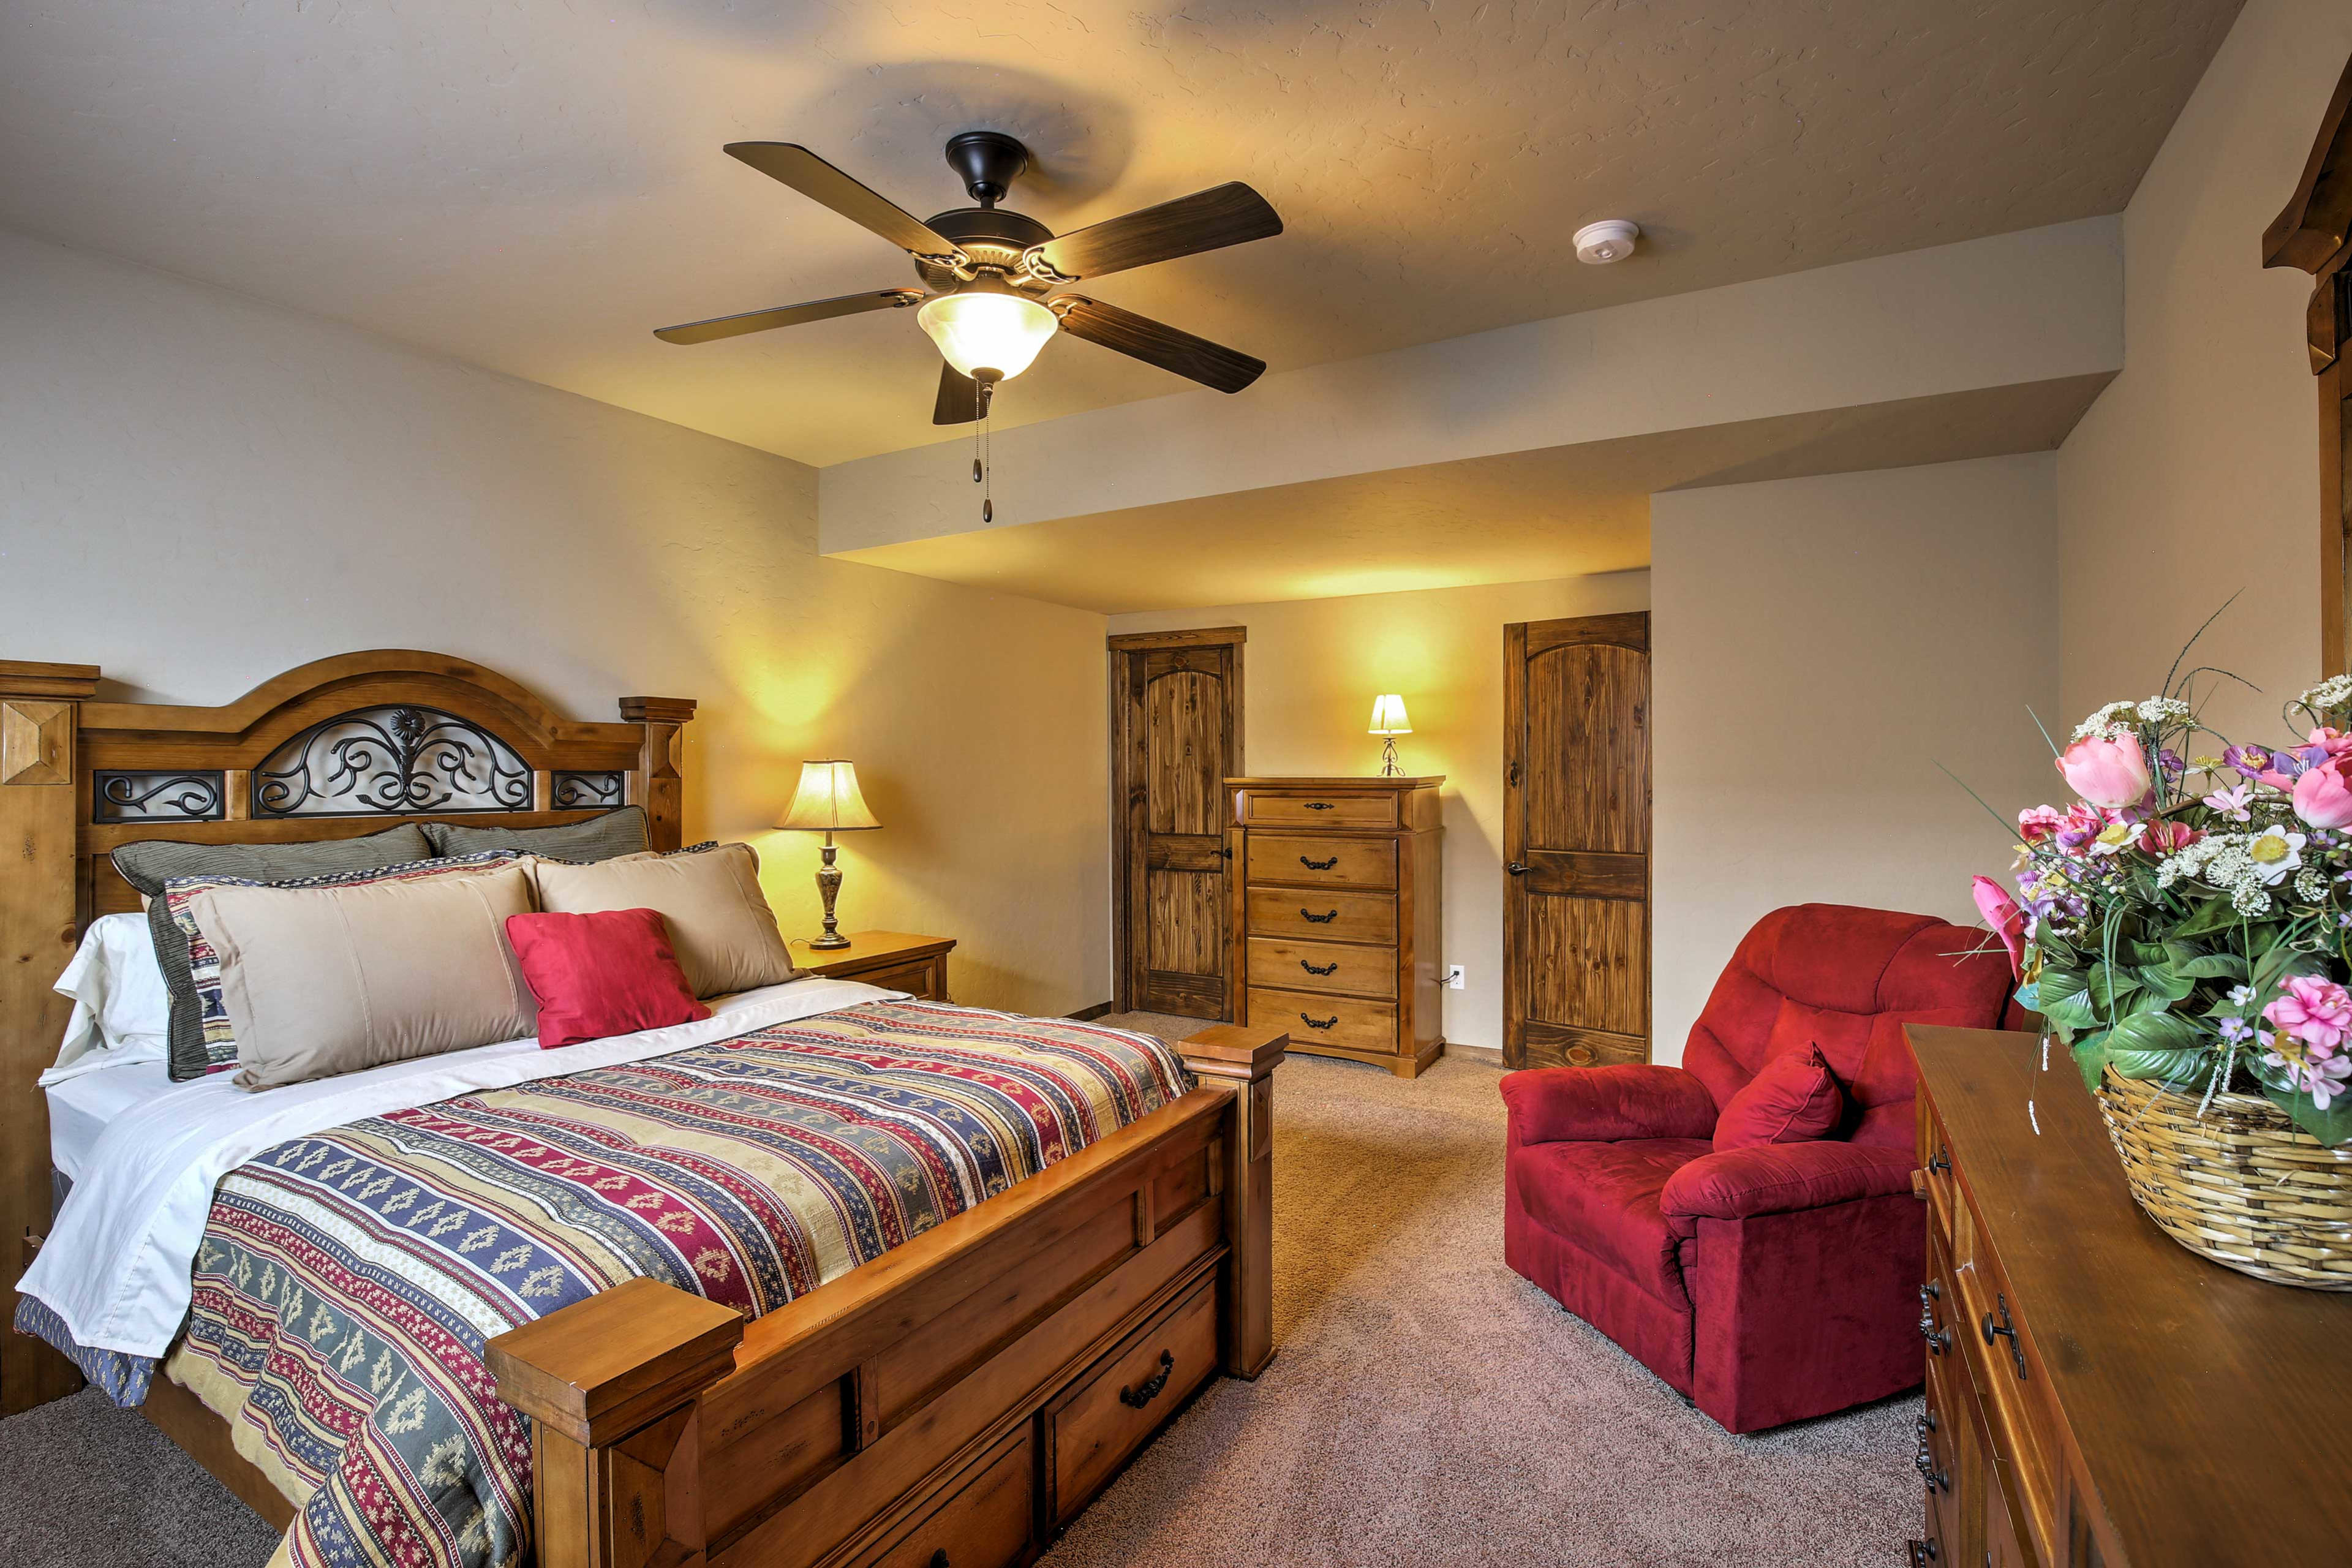 A second master bedroom has a queen-sized bed.